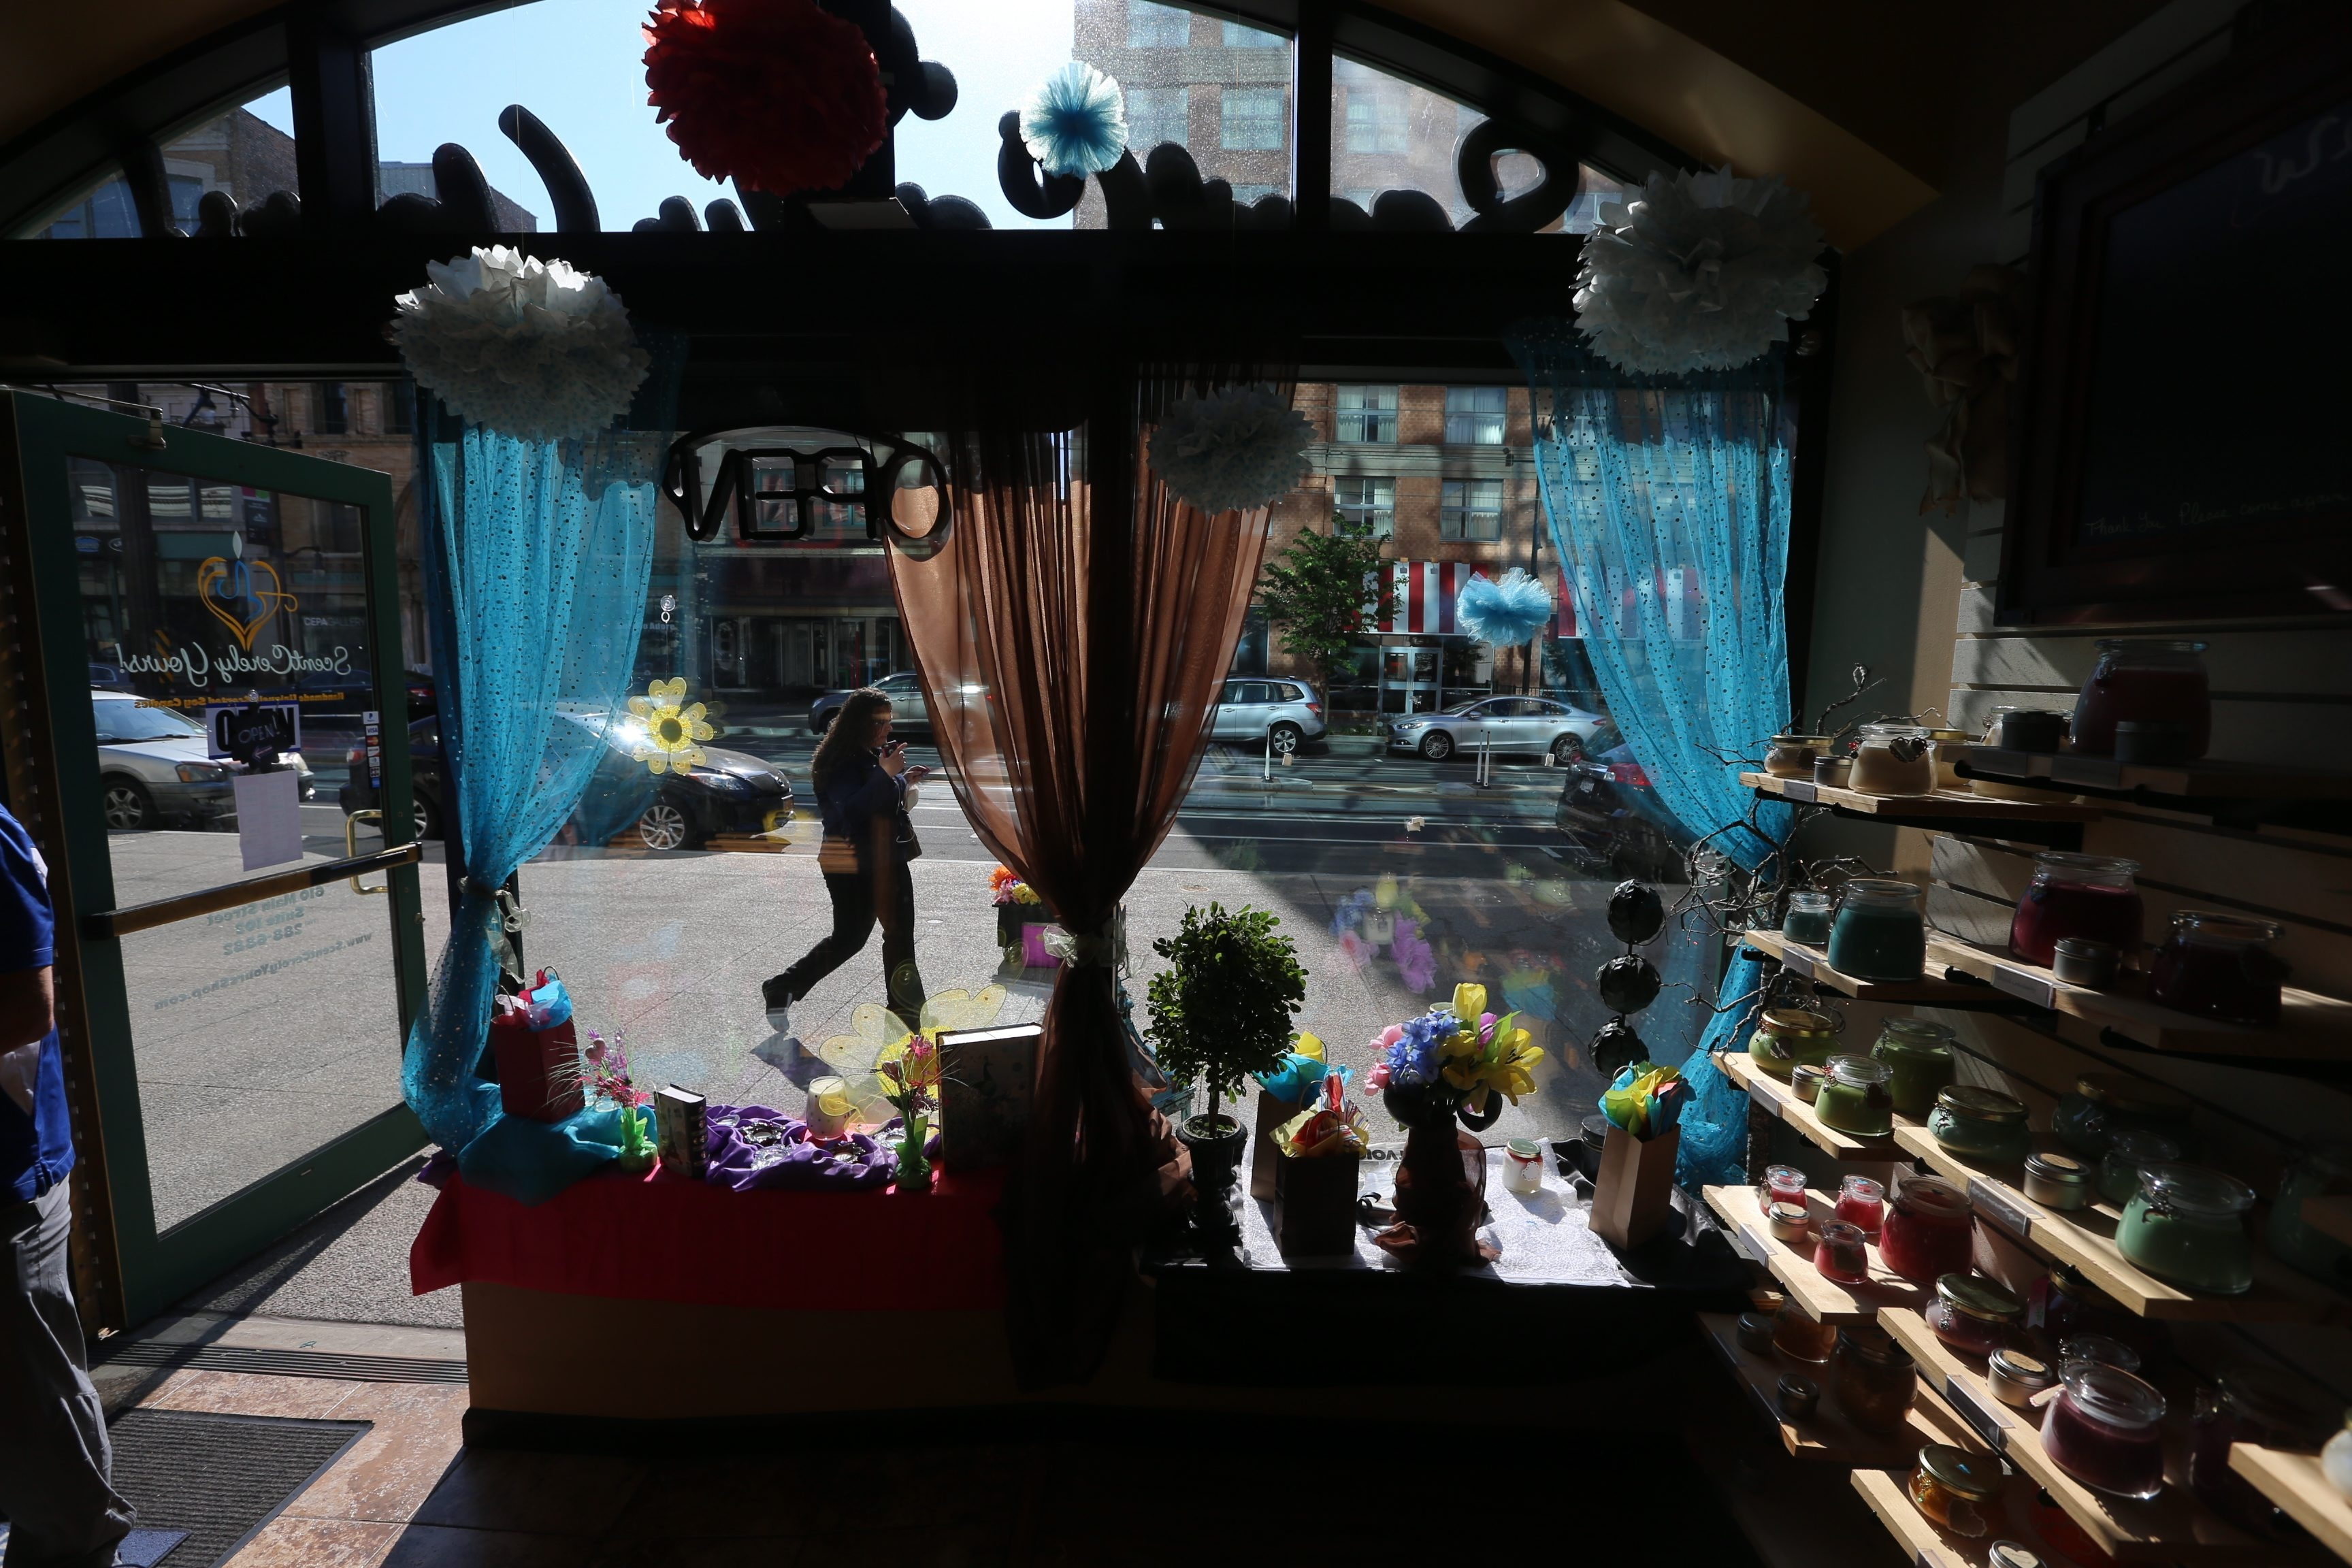 """The owners of ScentCerely Yours candle shop at 610 Main St., above, have put candle lanterns, sandwich boards and flower displays on the sidewalk to attract customers, who often stop in and say, """"Whoa! I didn't know you were here!"""""""